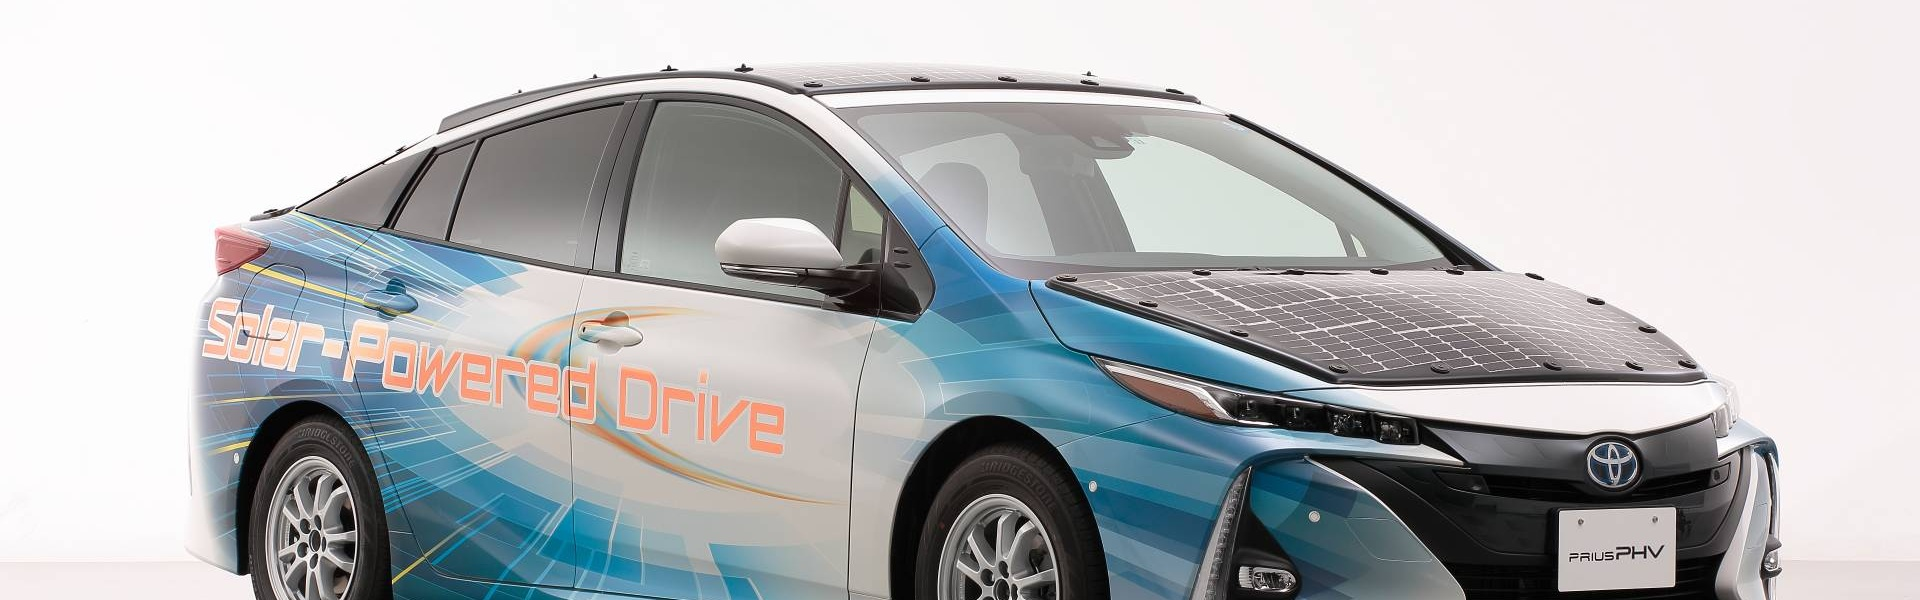 toyota-prius-phv-demo-car-with-solar-panels-6.jpg